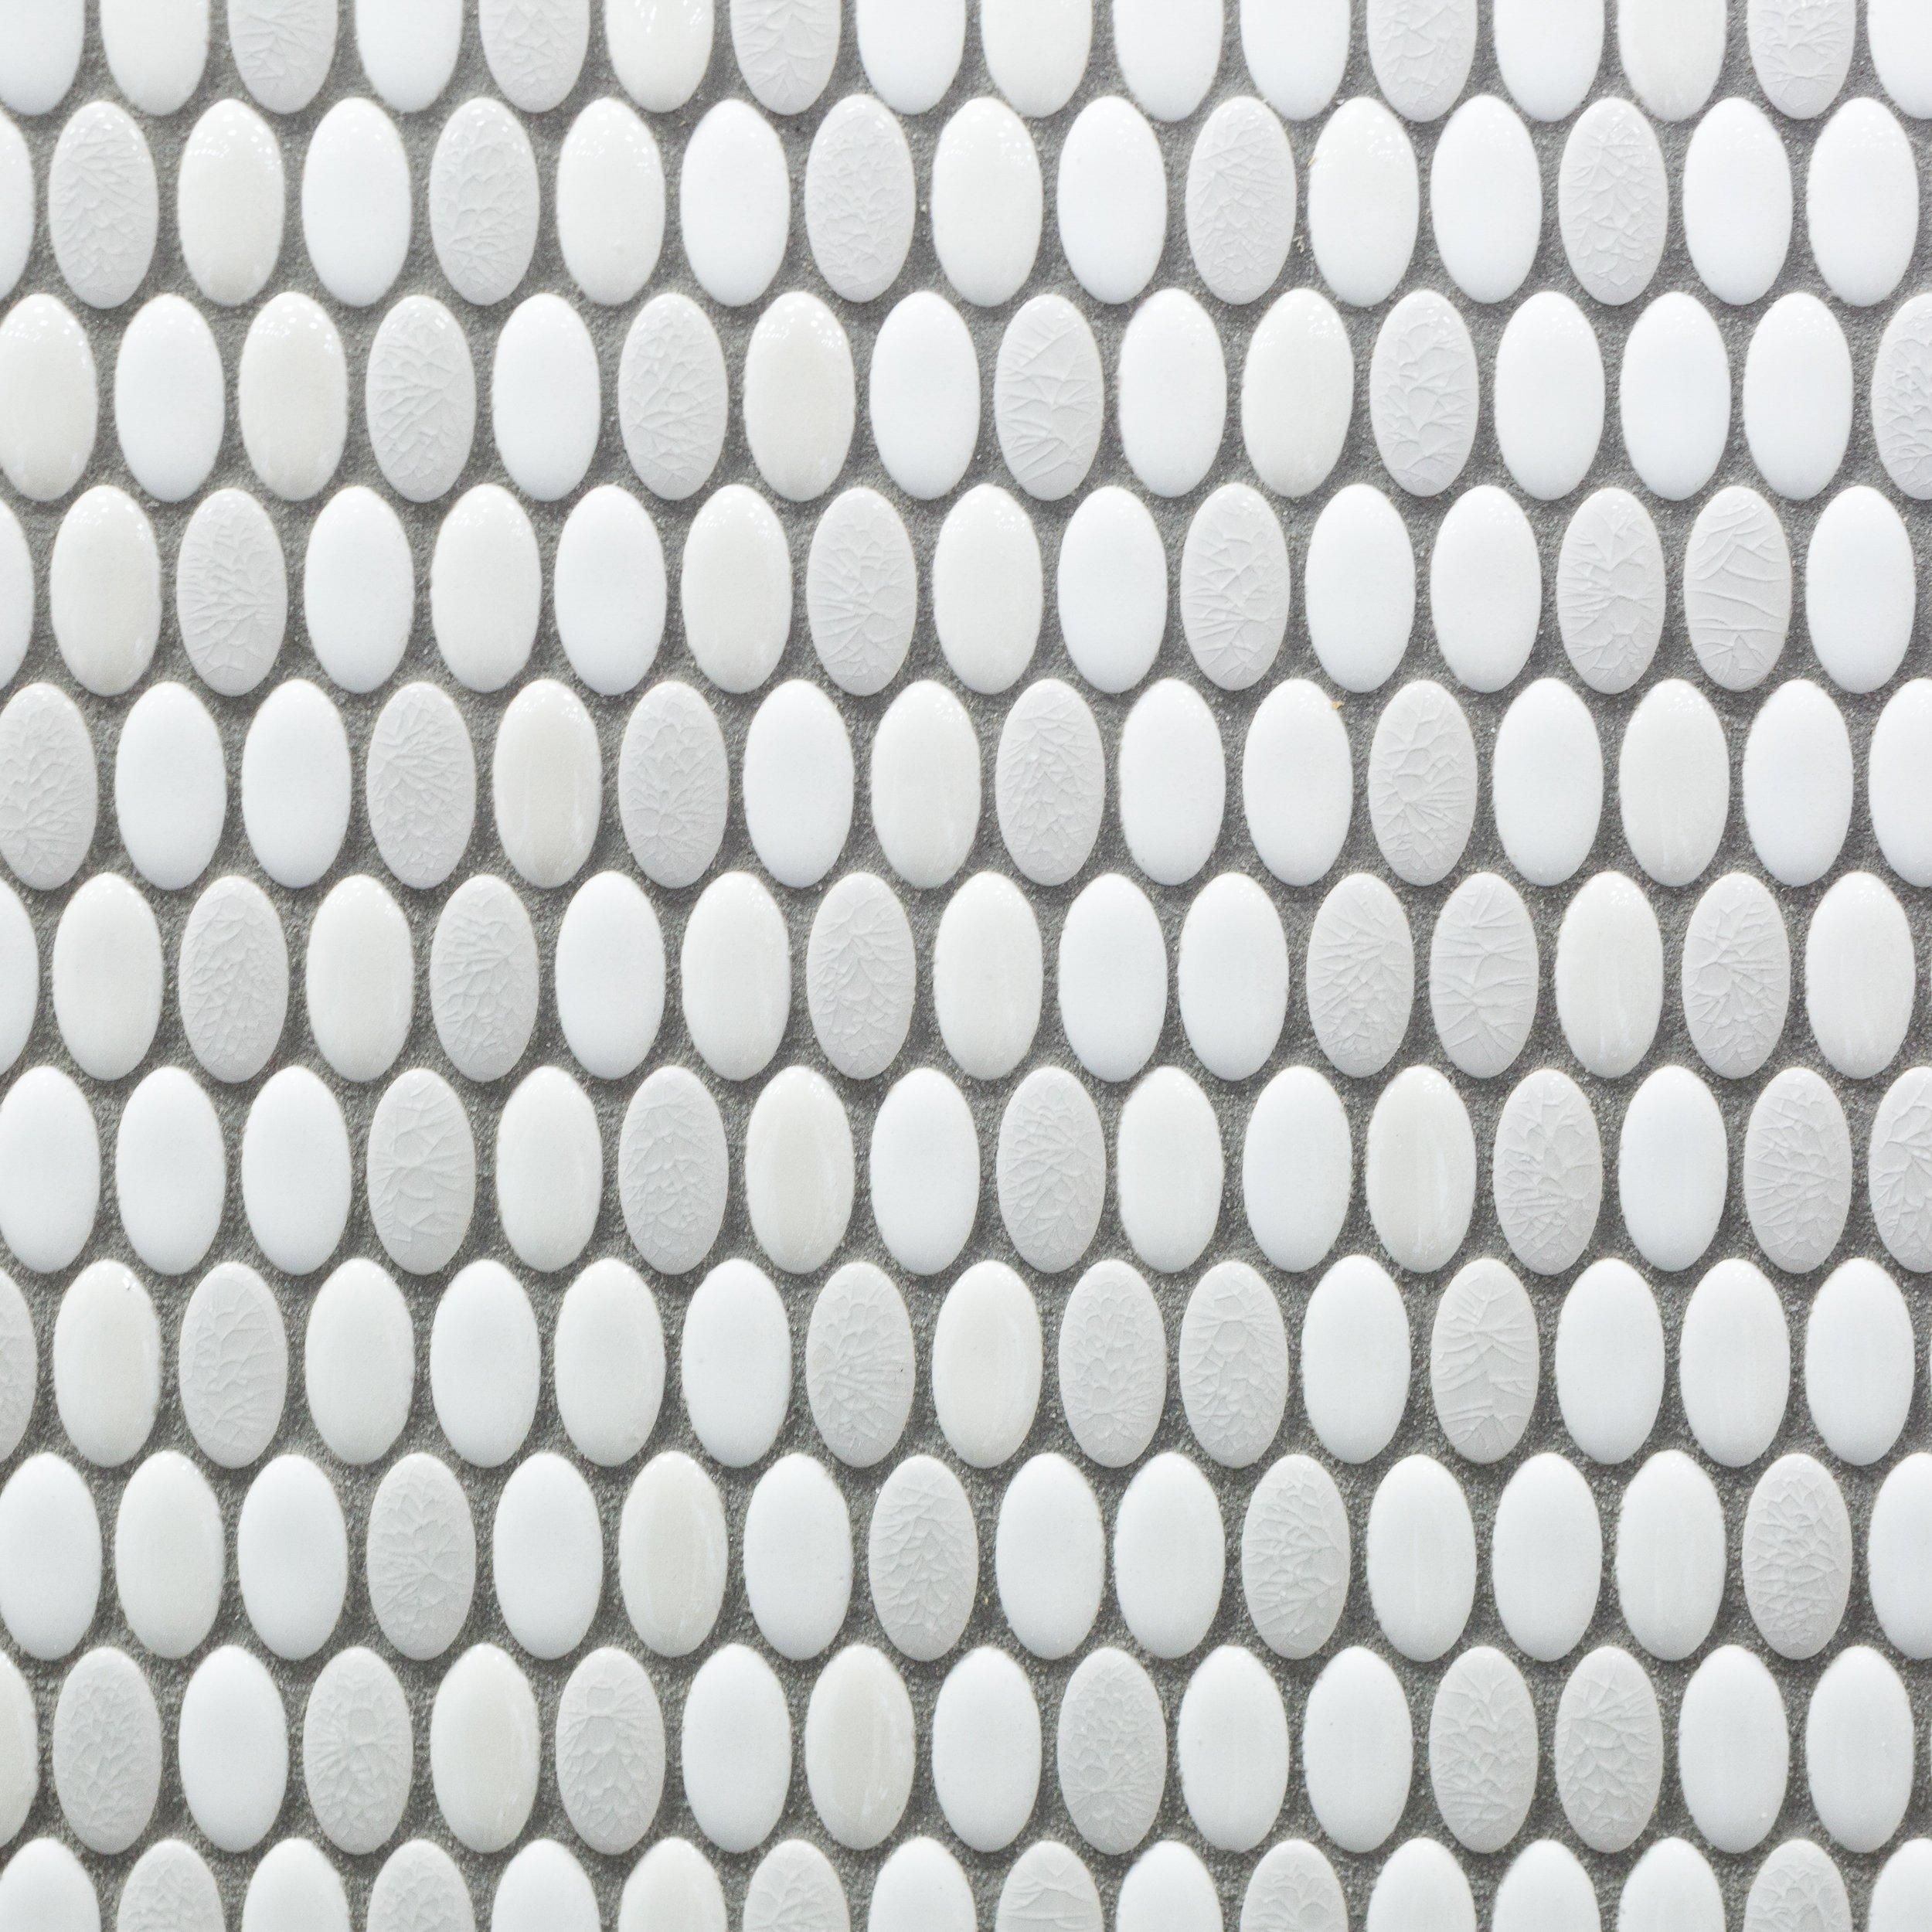 Abalone Ellipse Ceramic Mosaic Mosaic Decorative Tile Backsplash Mosaic Glass